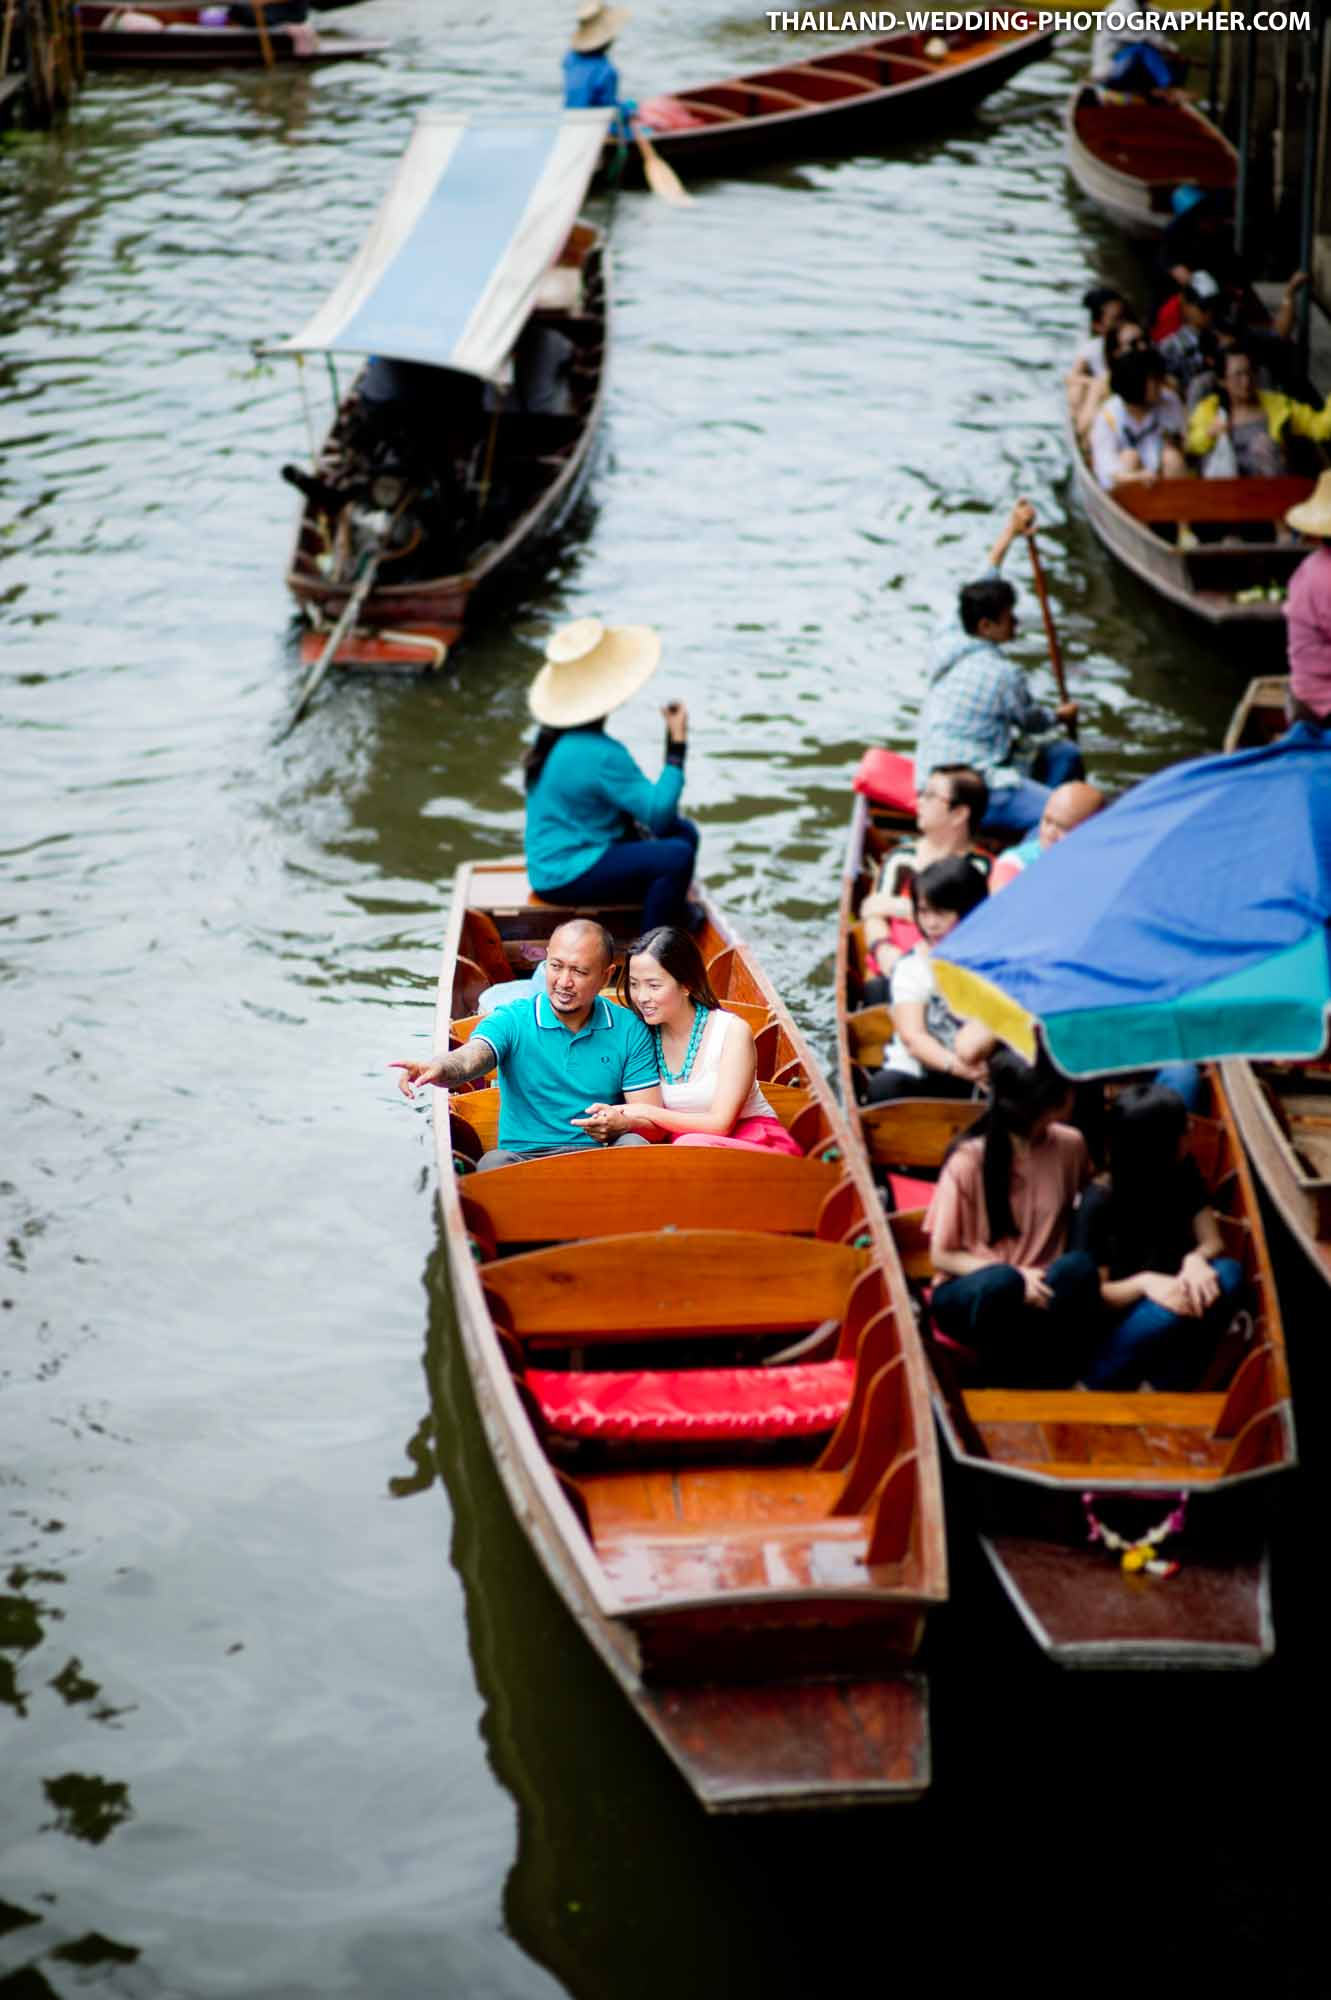 Damnoen Saduak Floating Market Ratchaburi Thailand Wedding Photography